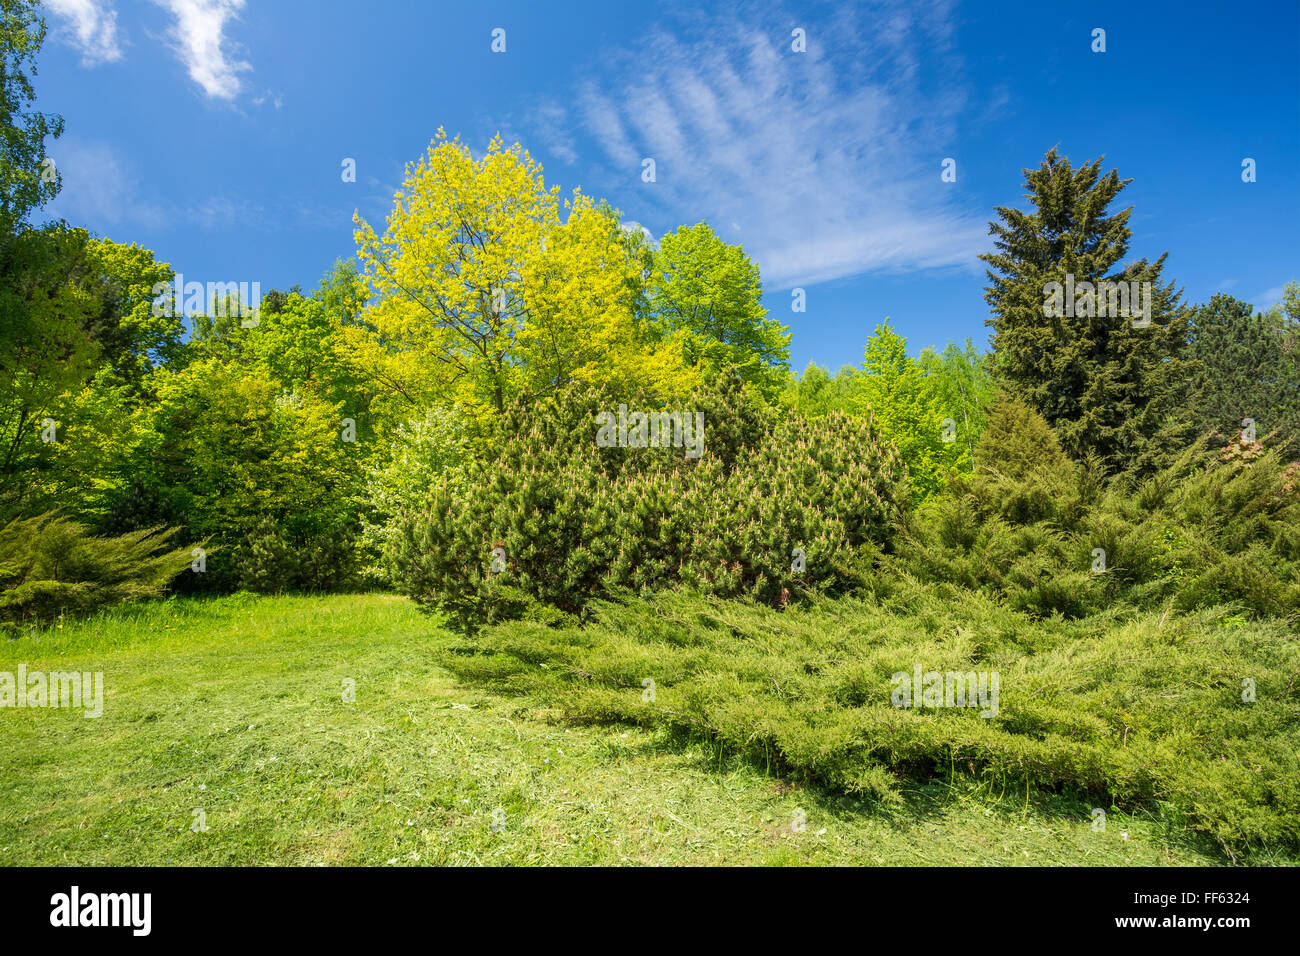 Garden Design Bushes Stock Photos & Garden Design Bushes Stock ... on